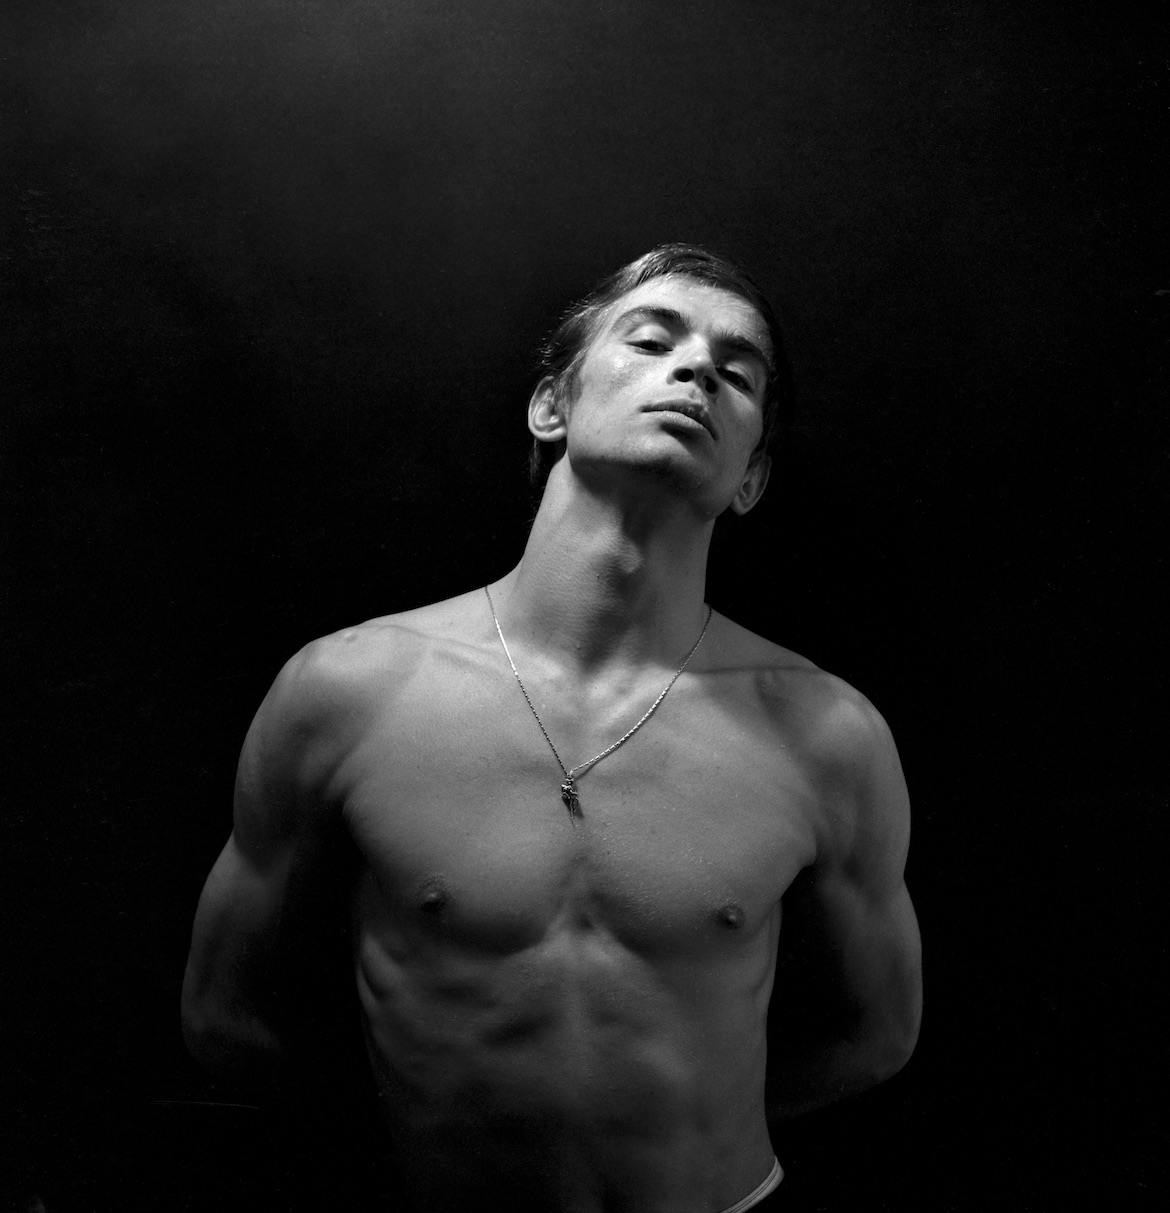 The NUREYEV film provides a great insight into this passionate, enigmatic dancer